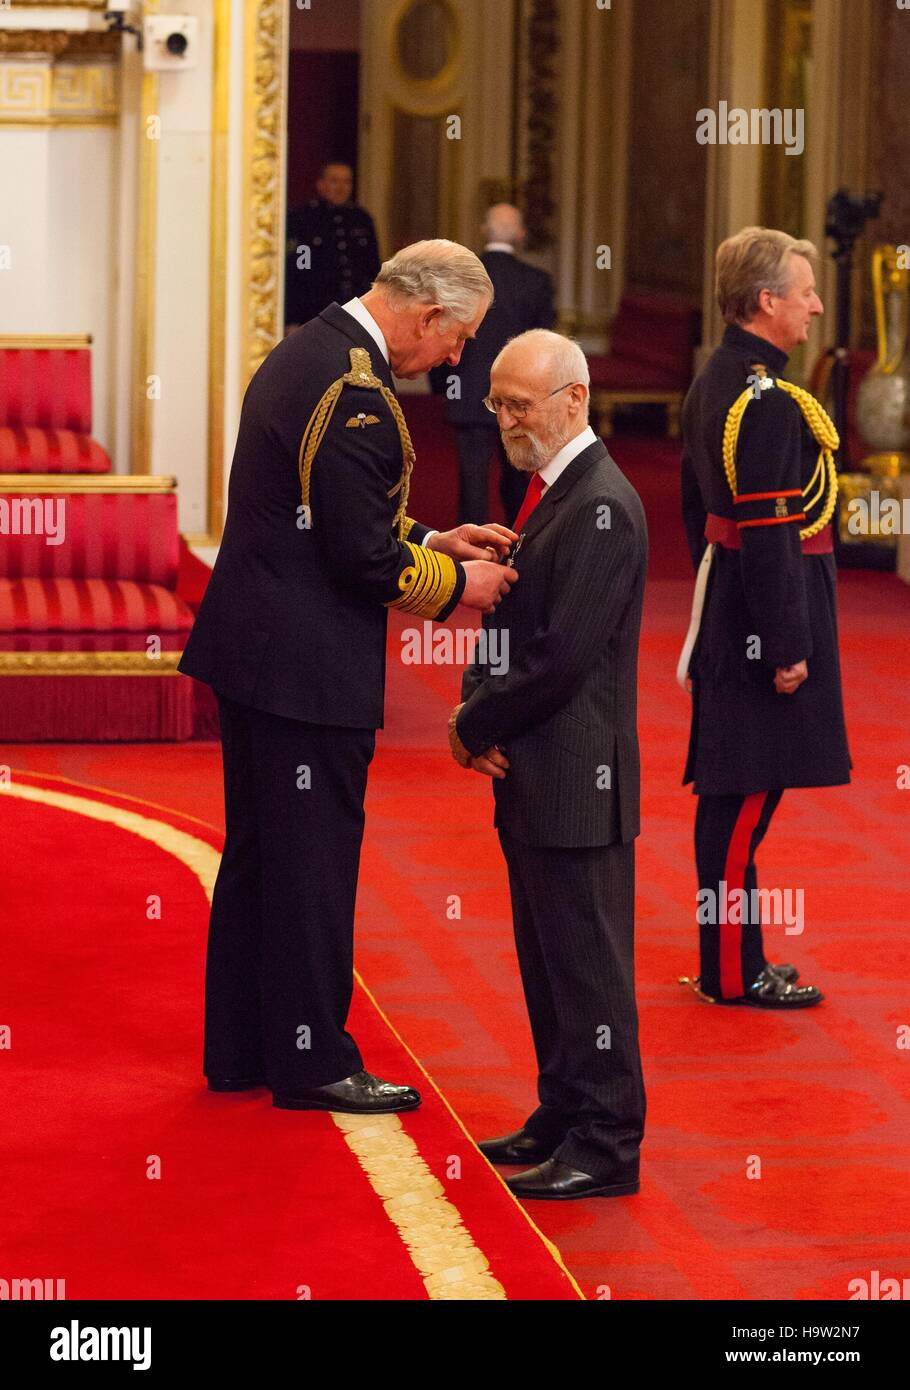 Dr Robert Campbell from York is made an MBE (Member of the Order of the British Empire) by the Prince of Wales at - Stock Image